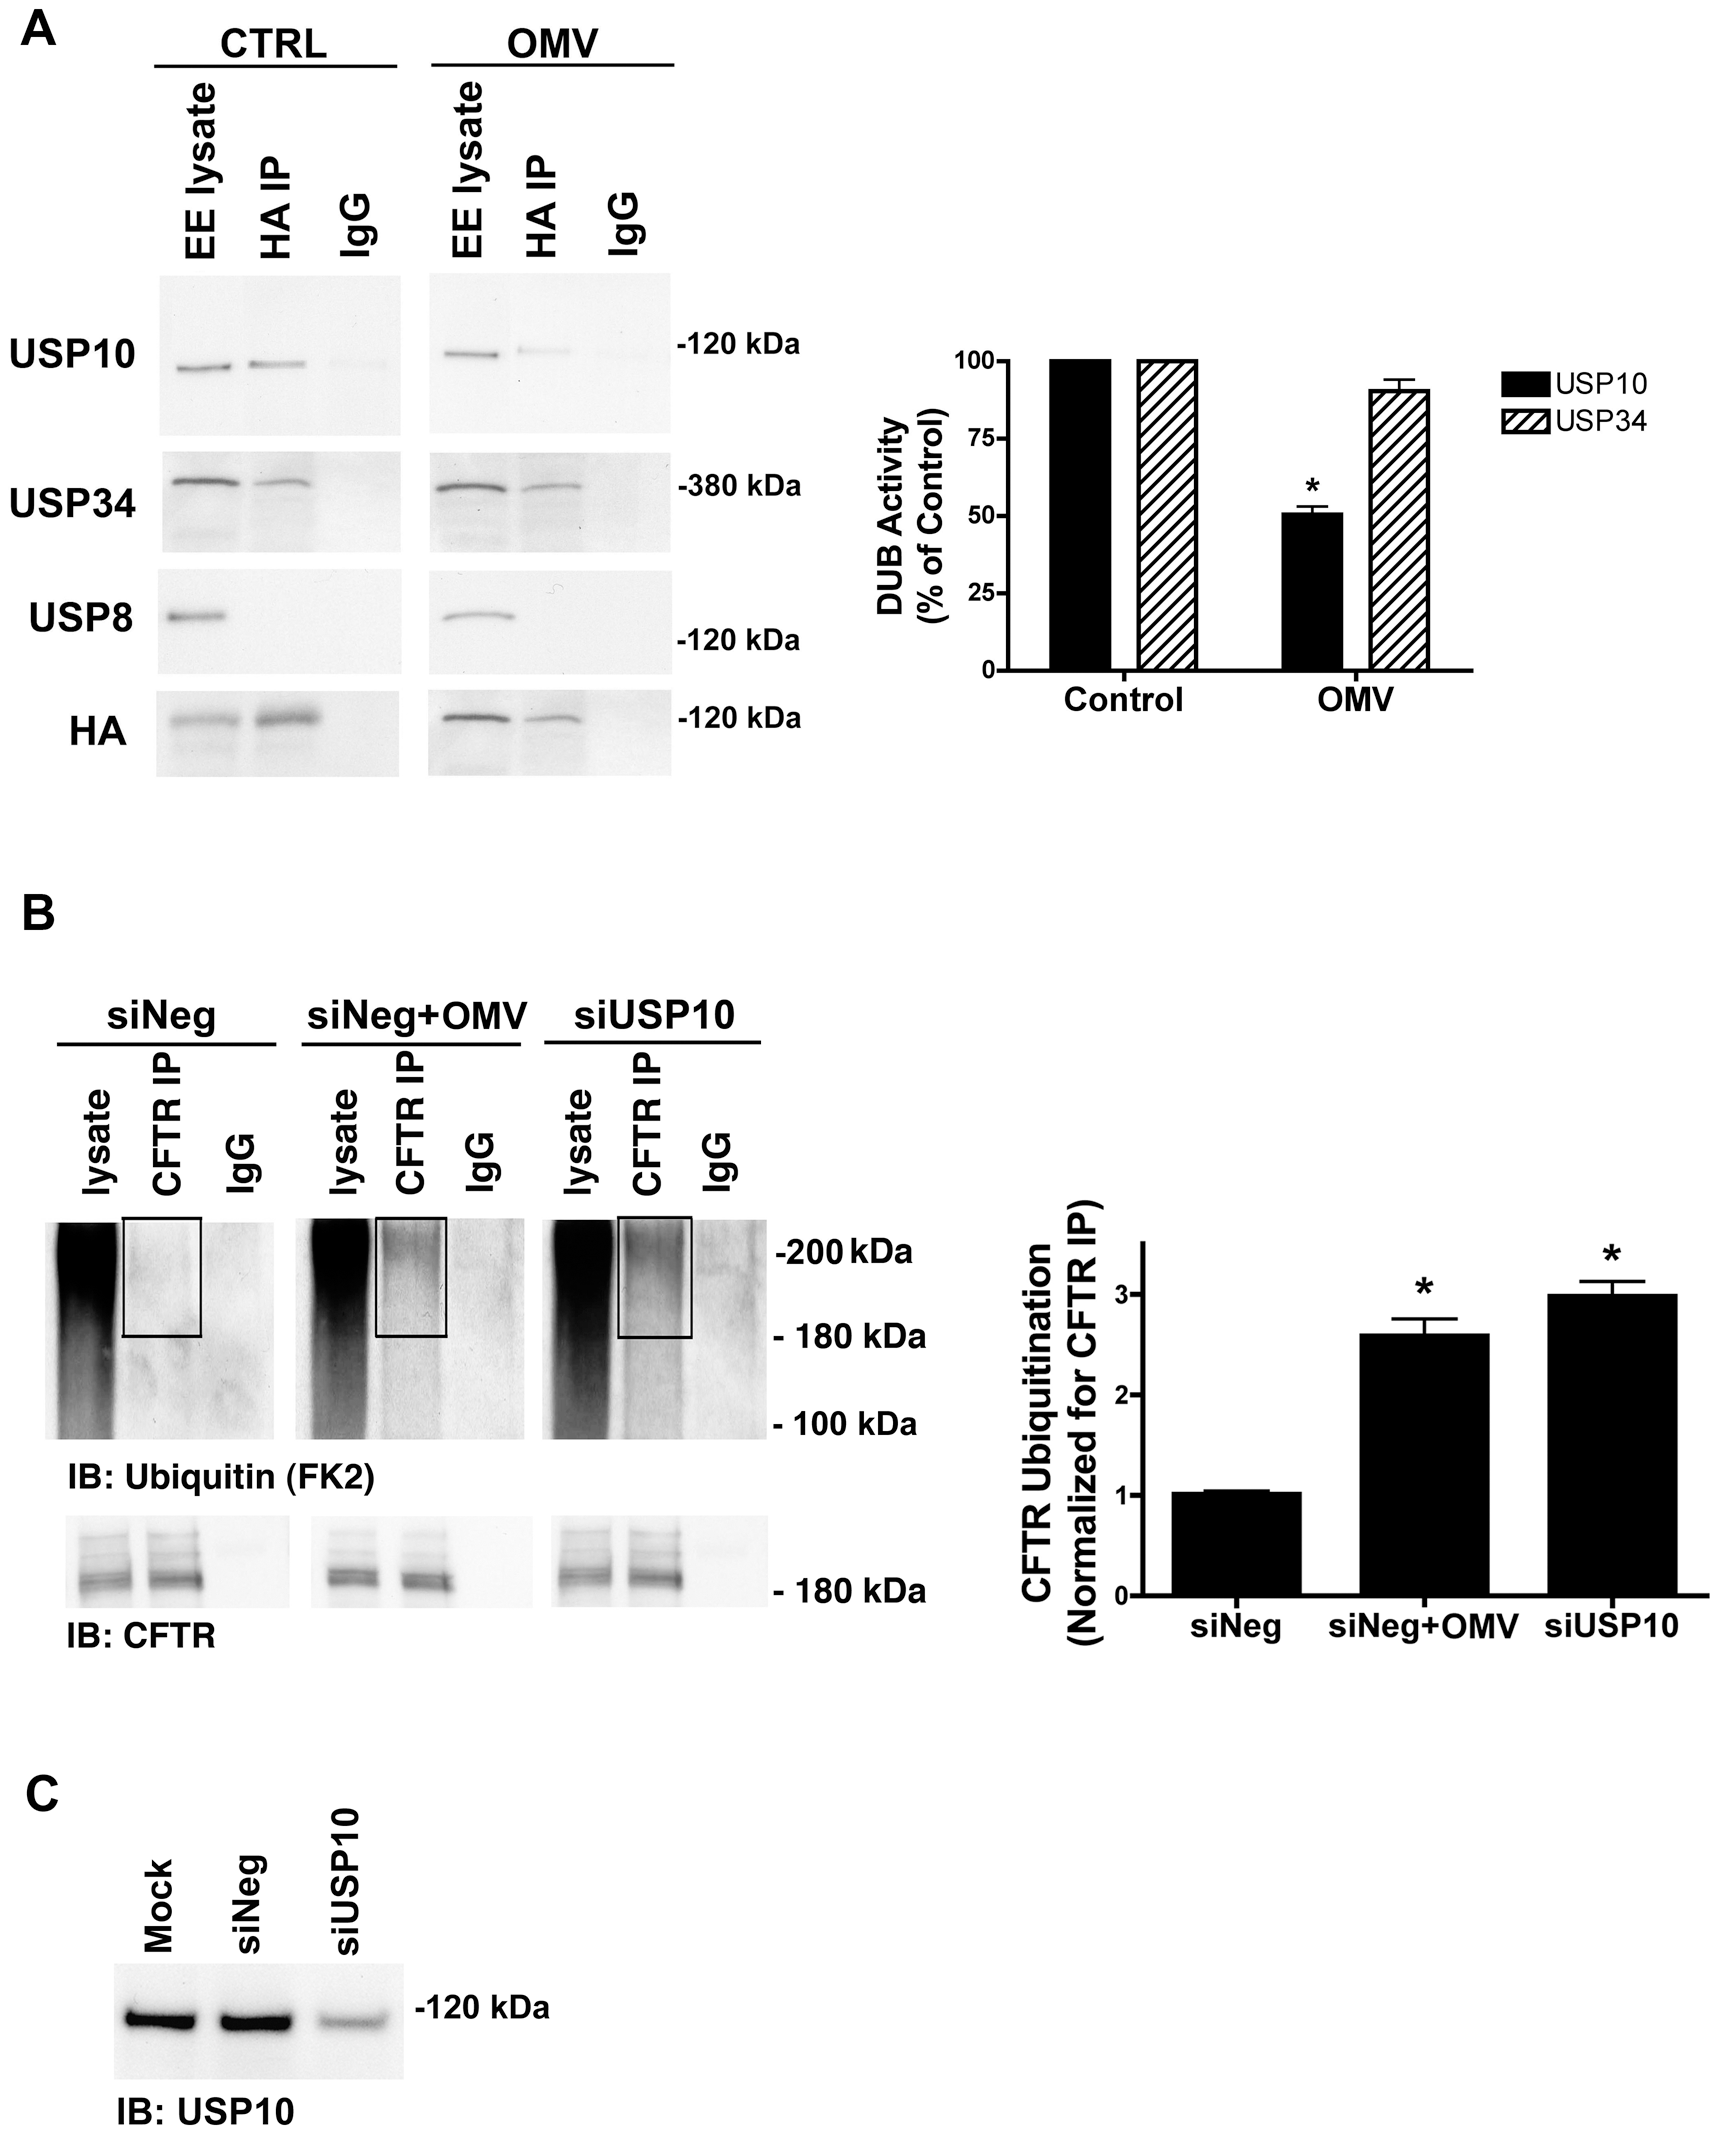 Cif selectively inhibits USP10 activity in early endosomes.